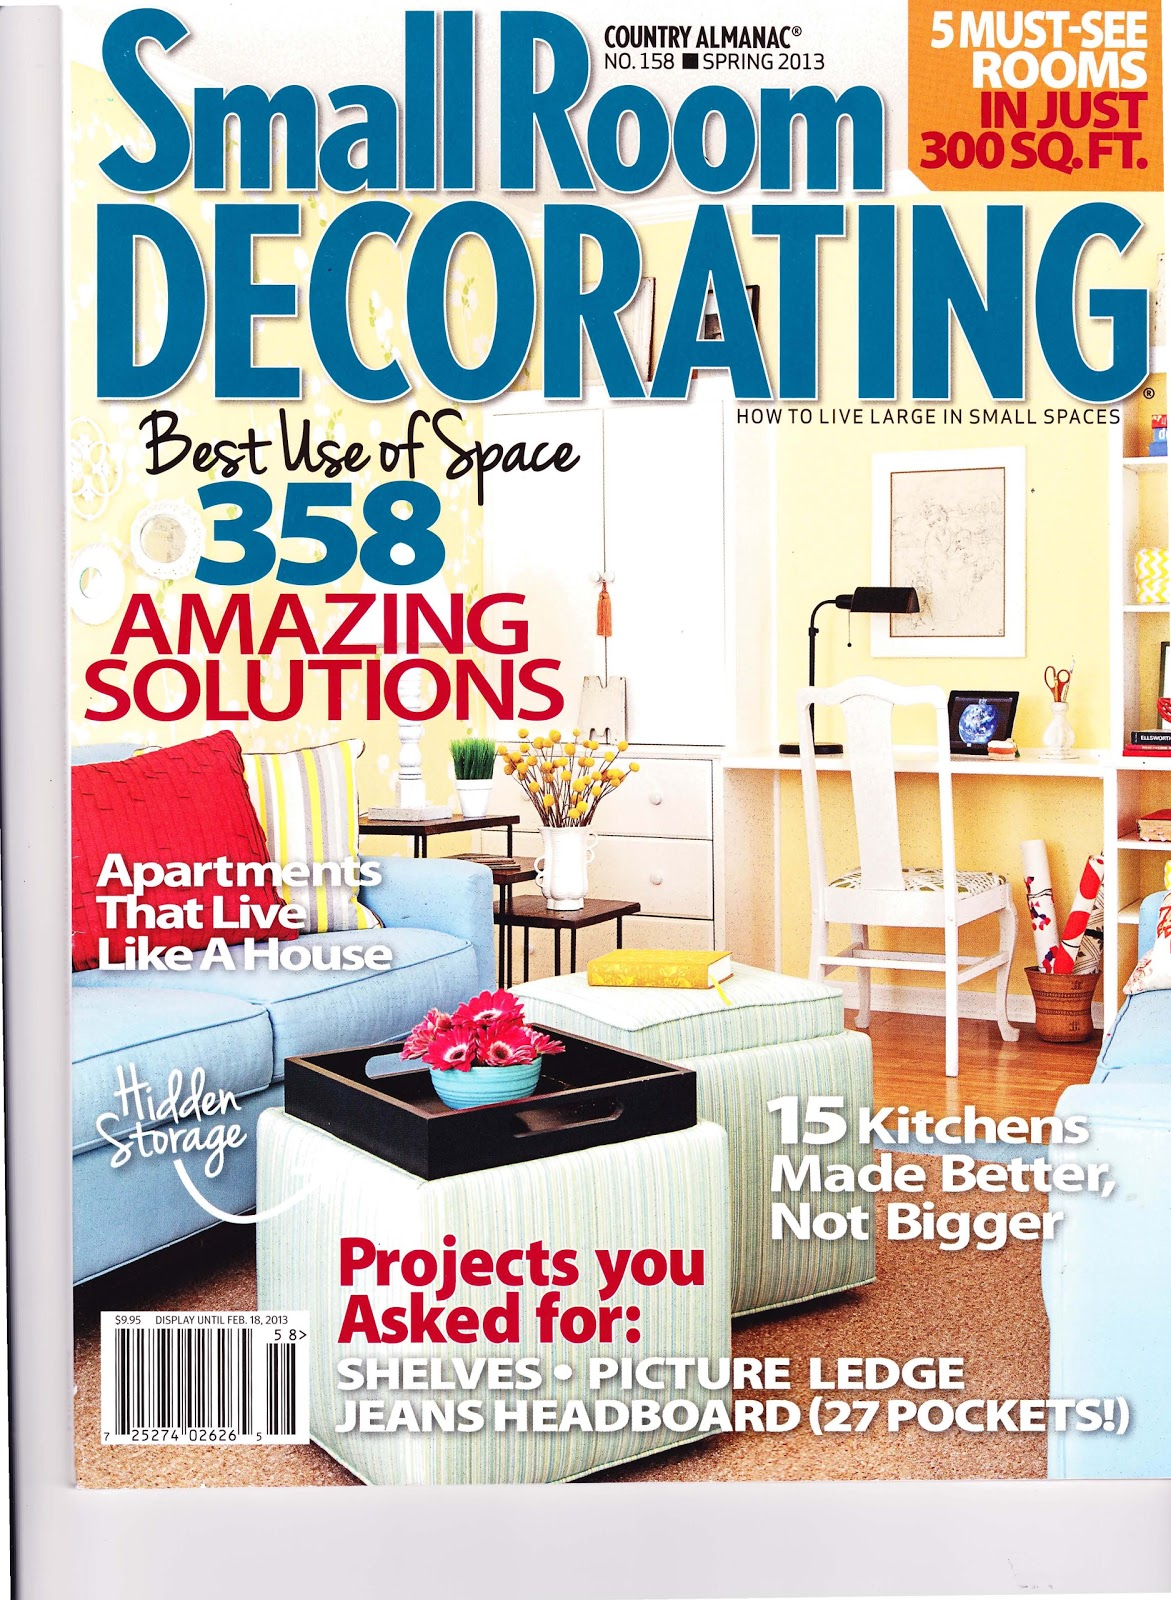 emi interior design, inc: small room decorating magazine 2013